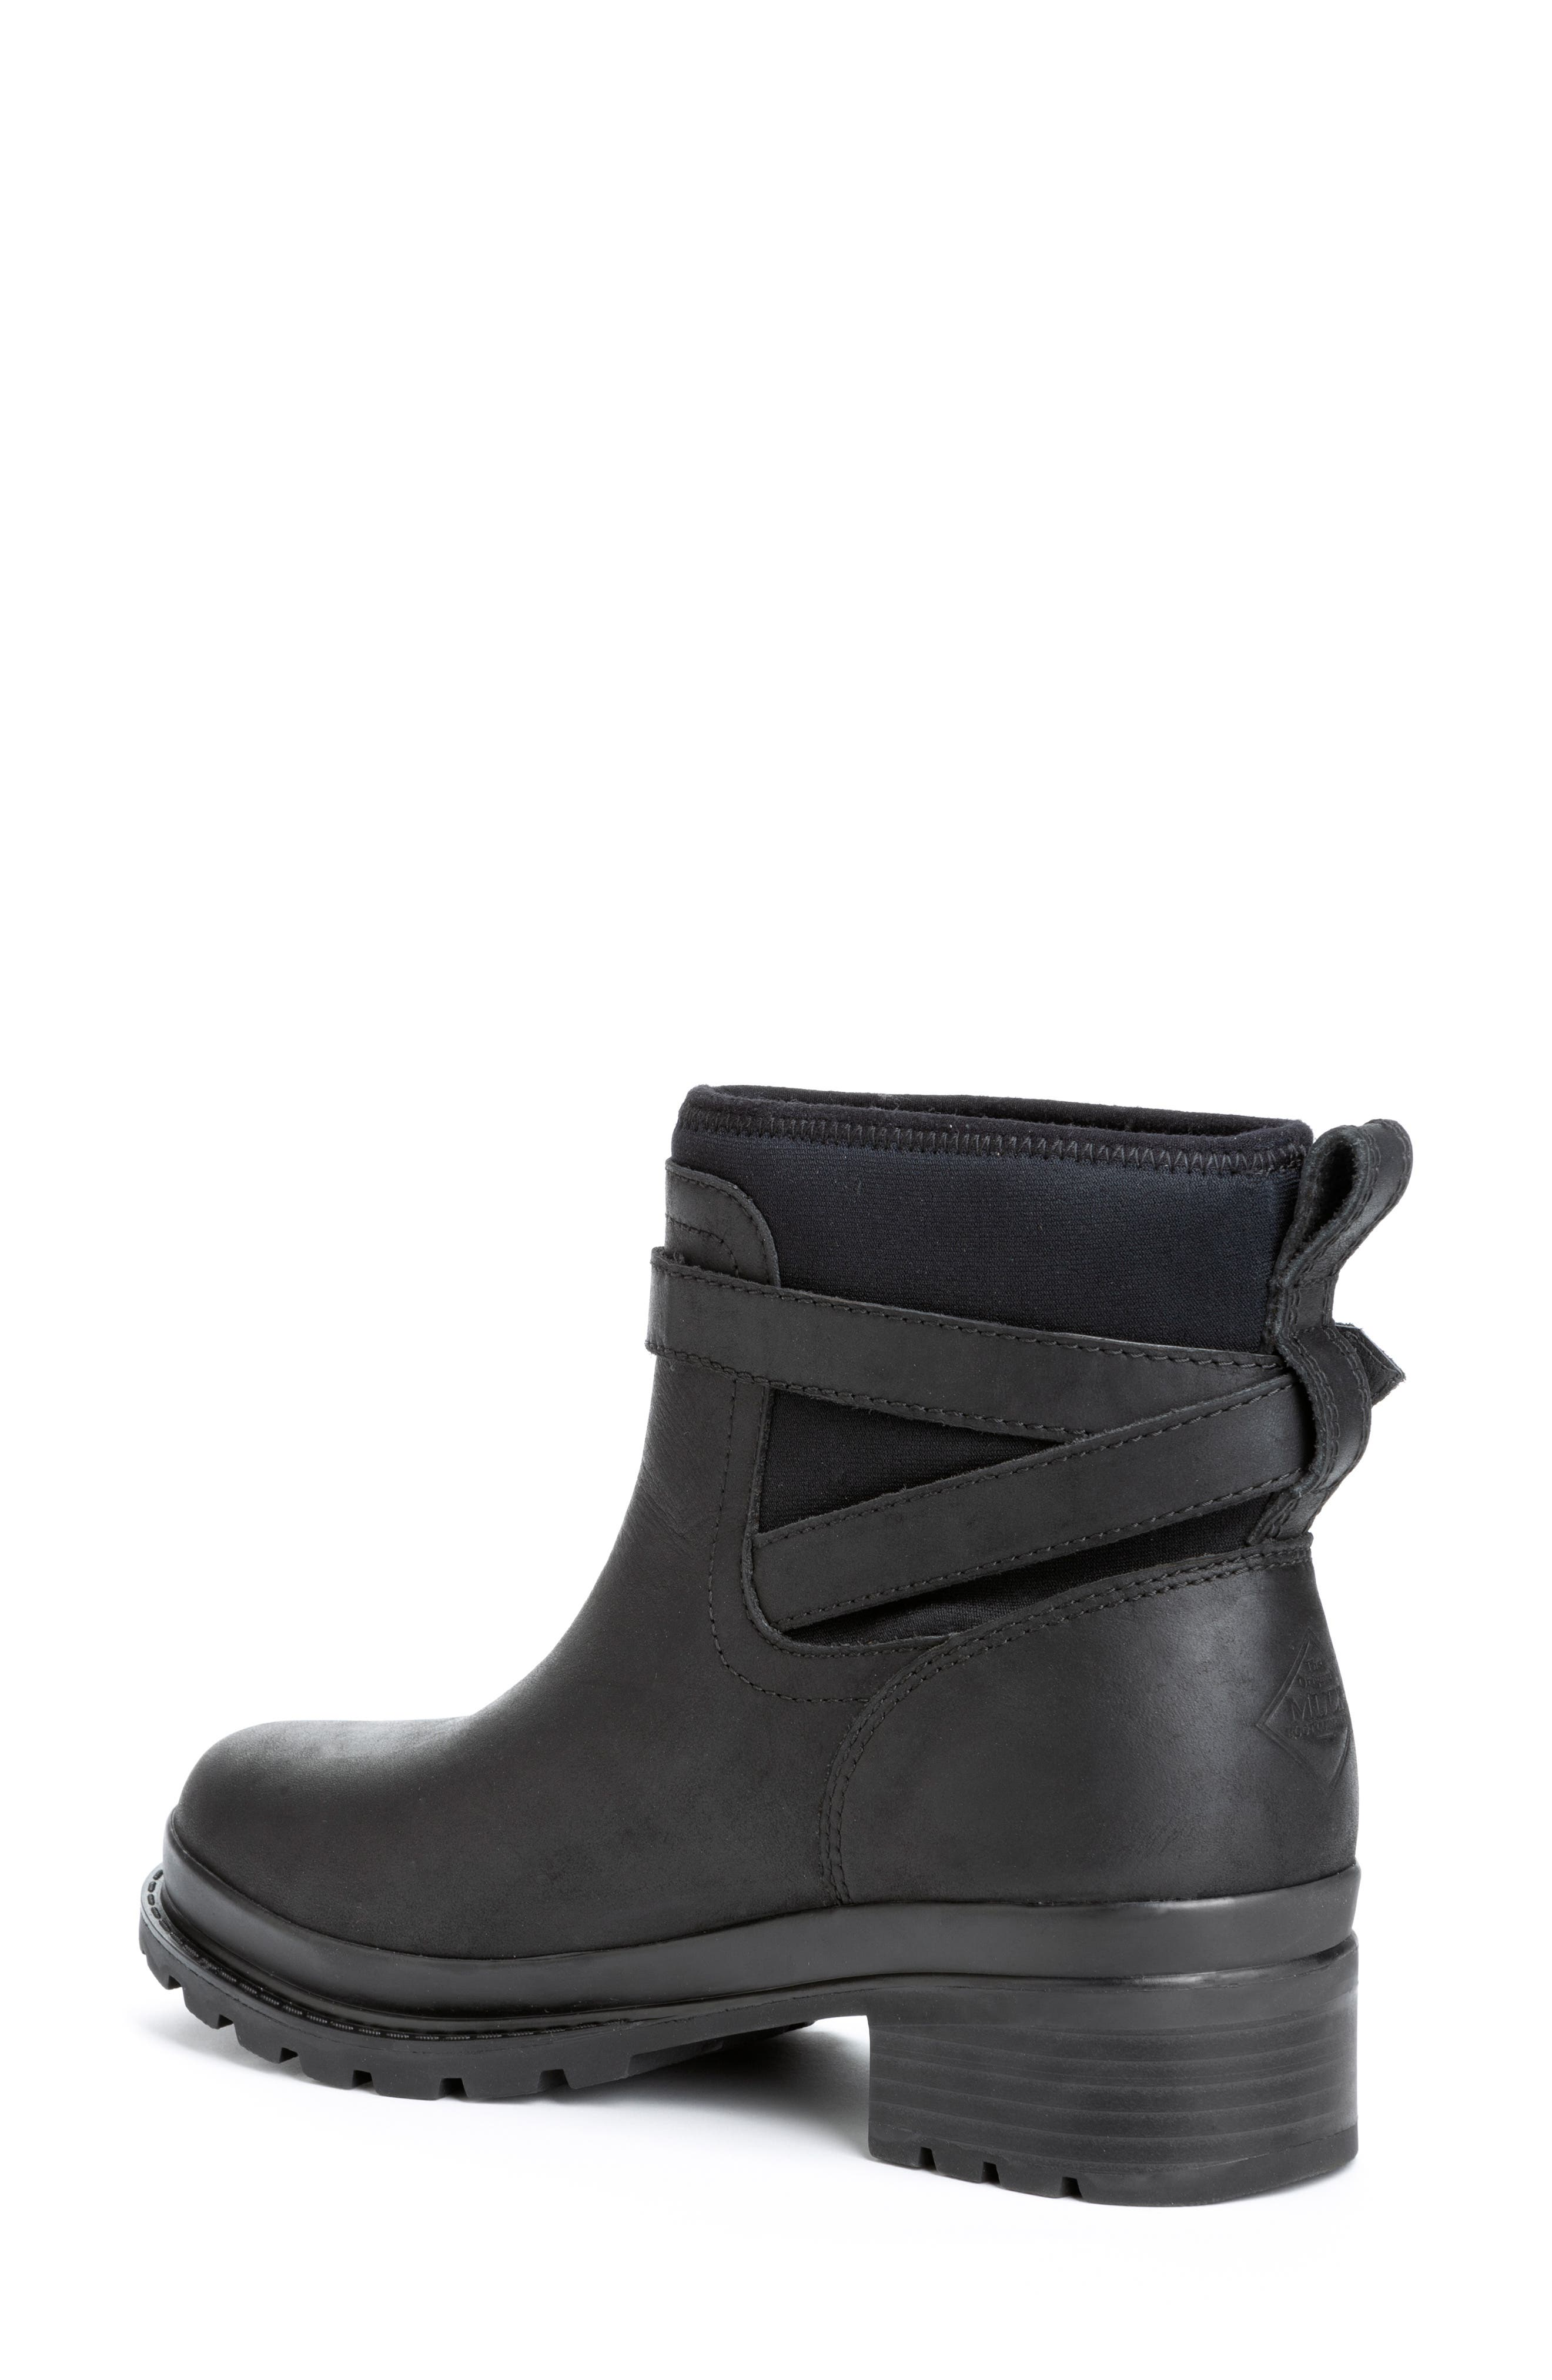 THE ORIGINAL MUCK BOOT COMPANY, Liberty Waterproof Boot, Alternate thumbnail 2, color, BLACK LEATHER